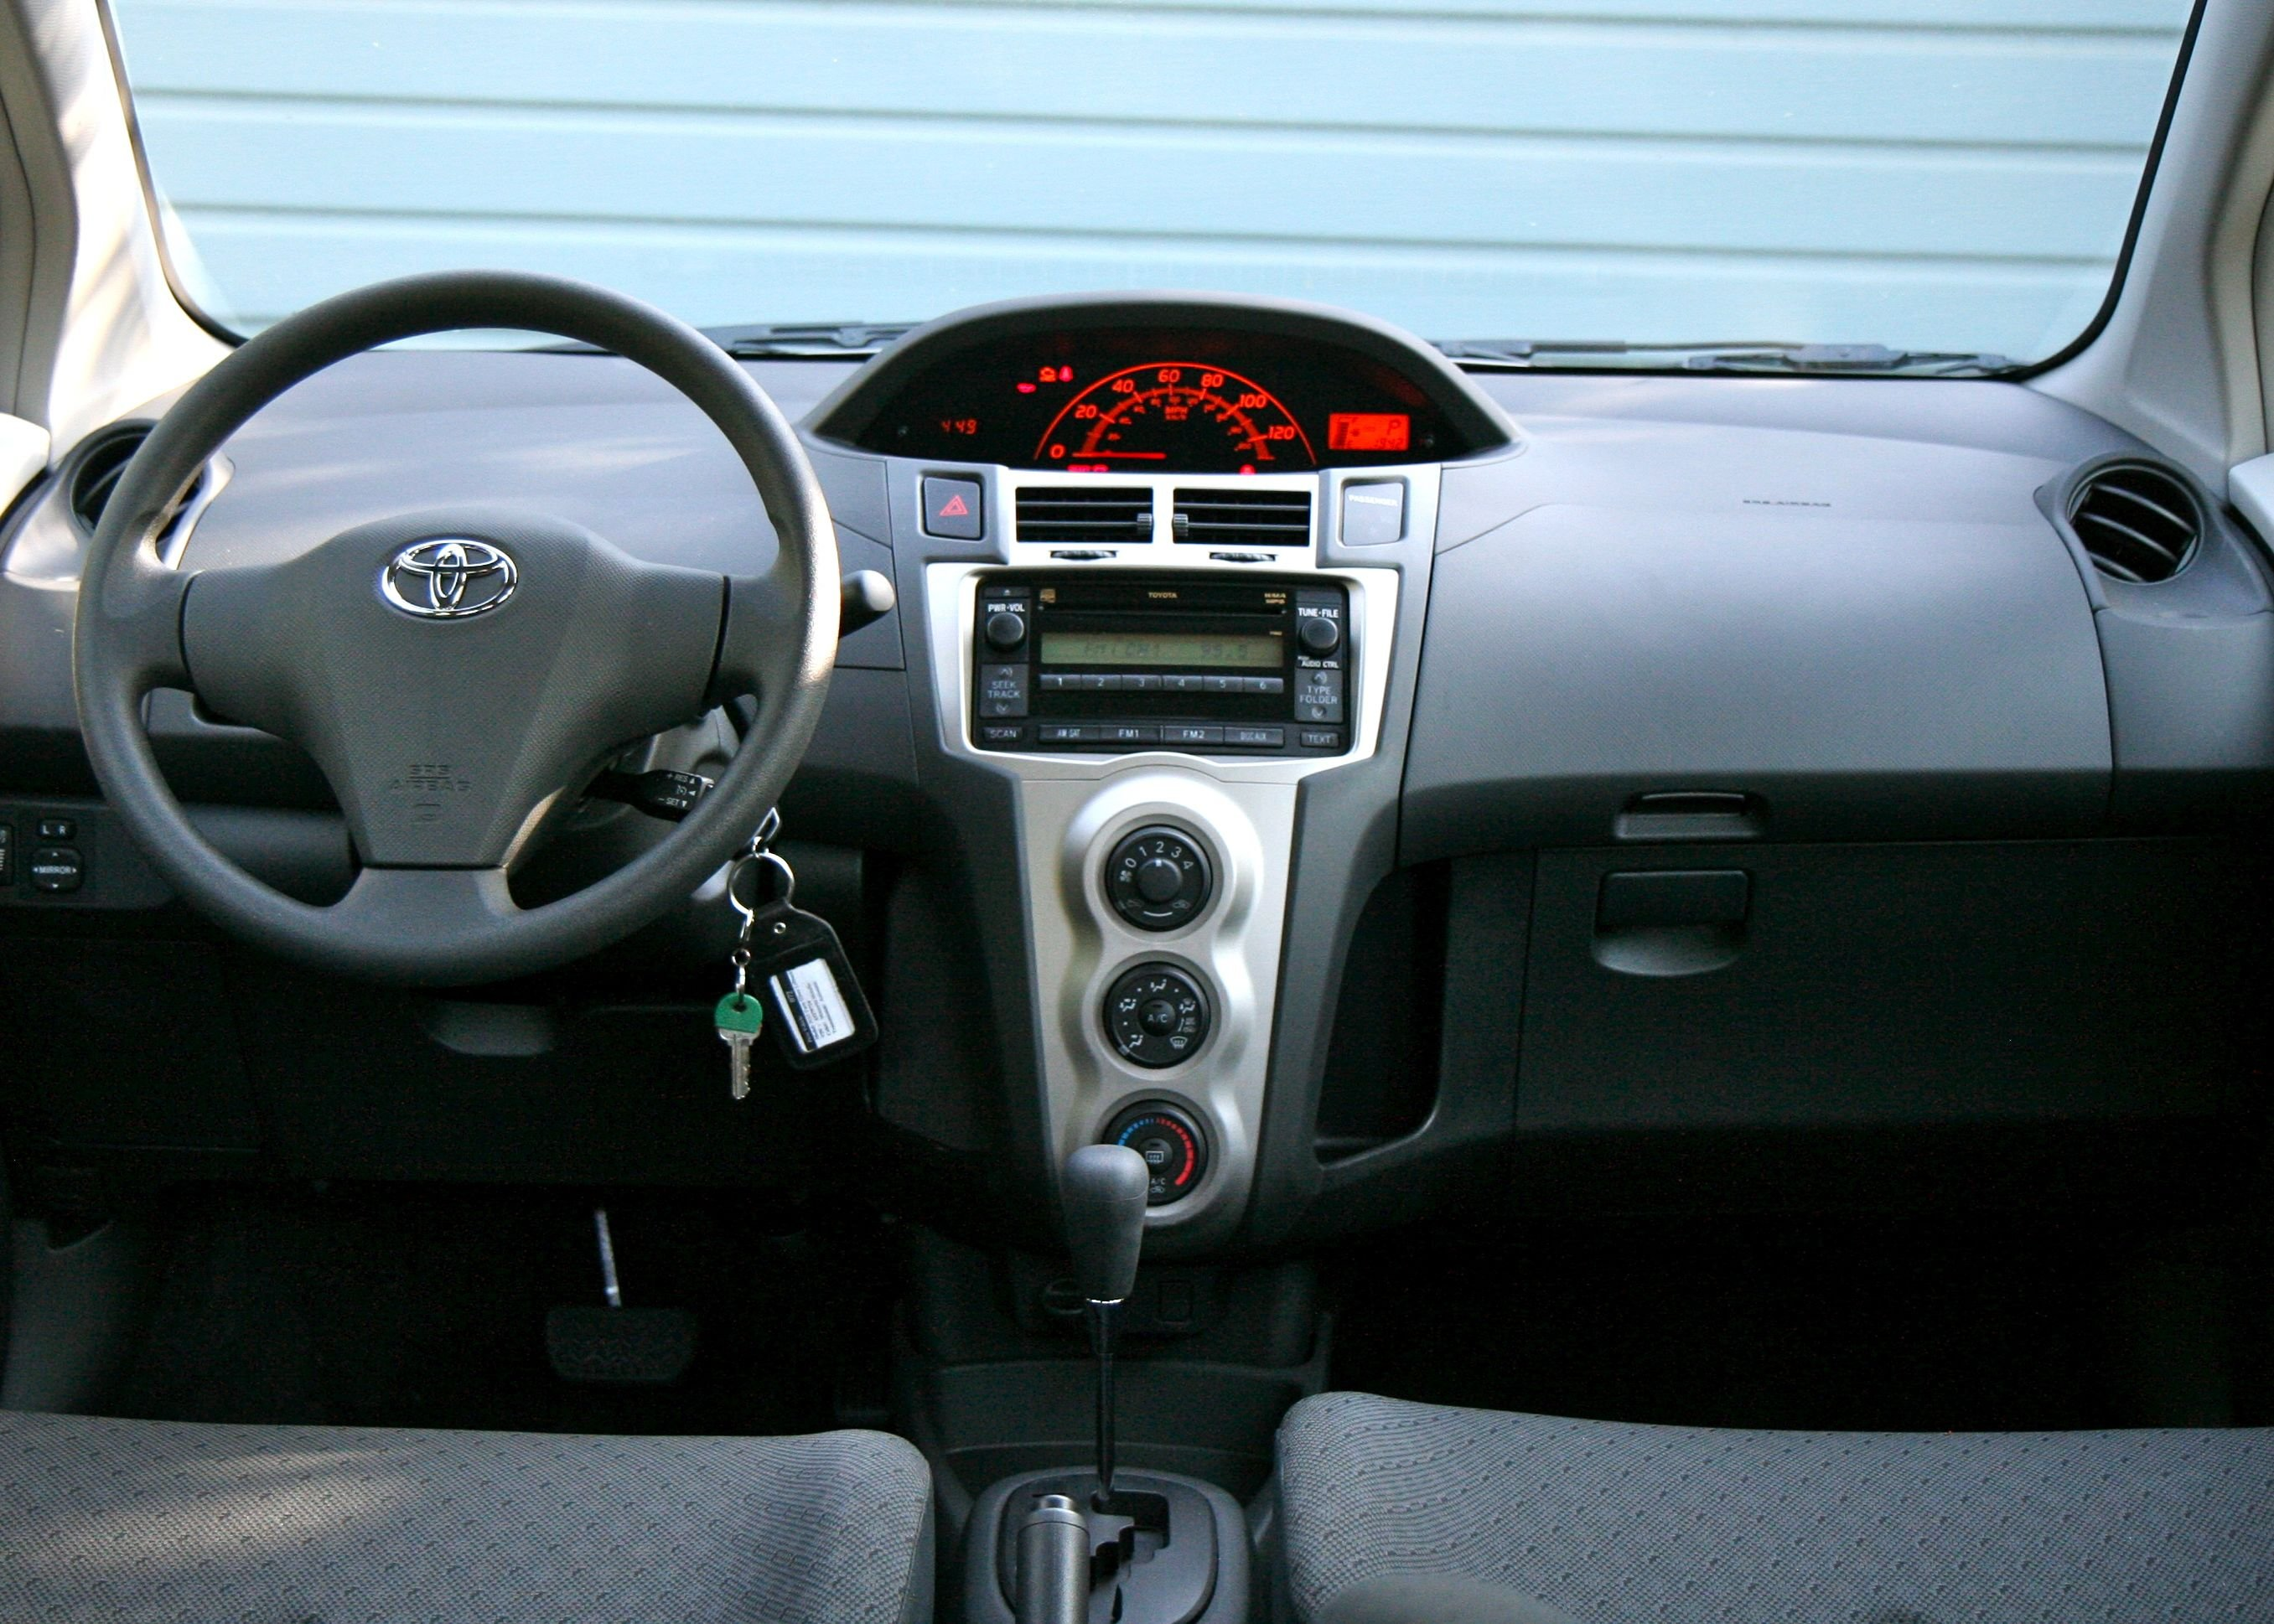 Toyota Yaris photo 15